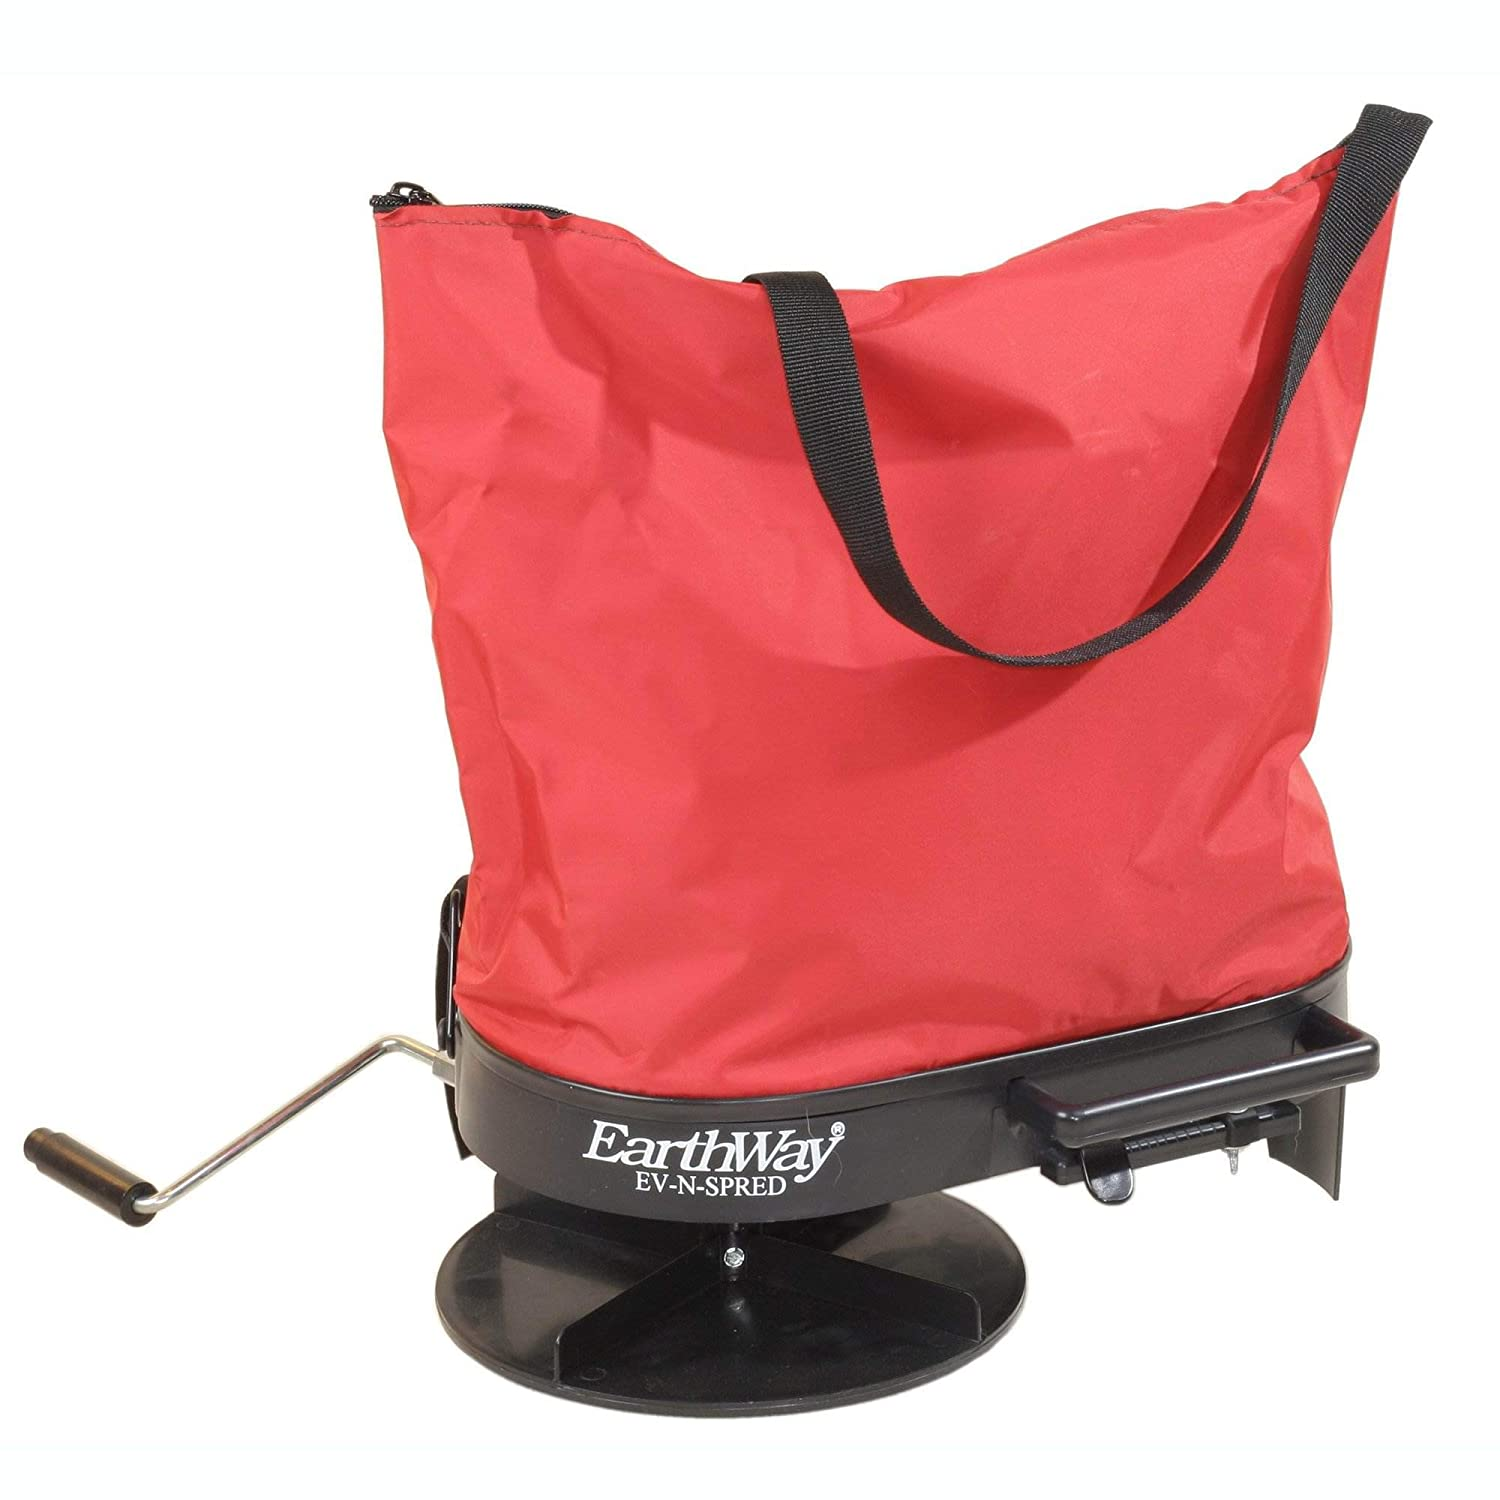 EARTHWAY PRODUCTS 2750 Hand Crank Bag Seeder/Spreader